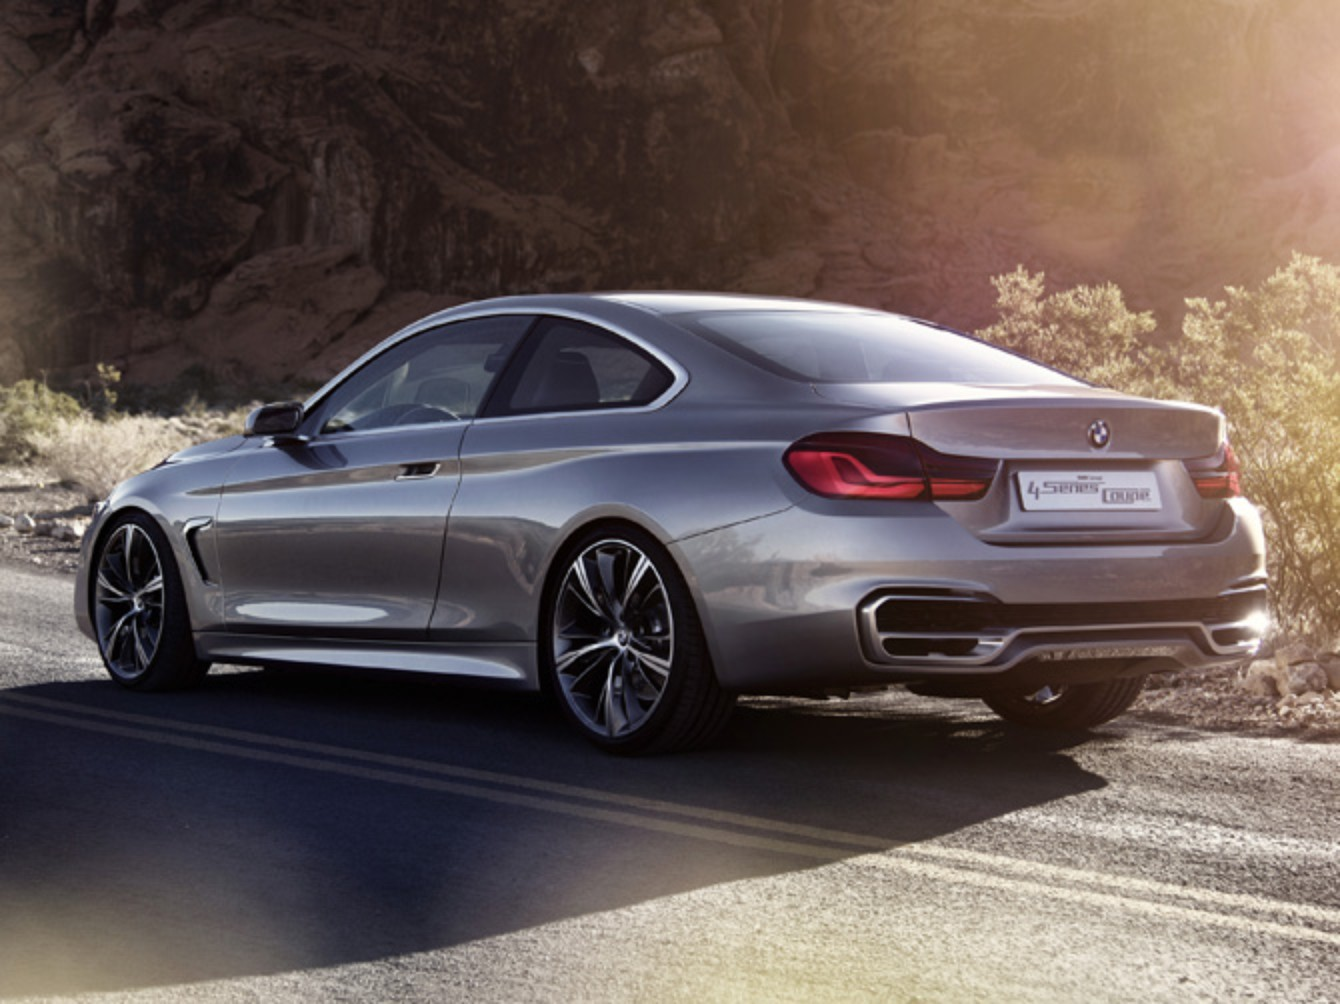 2019 Bmw 4 Series Coupe Concept Car Photos Catalog 2018